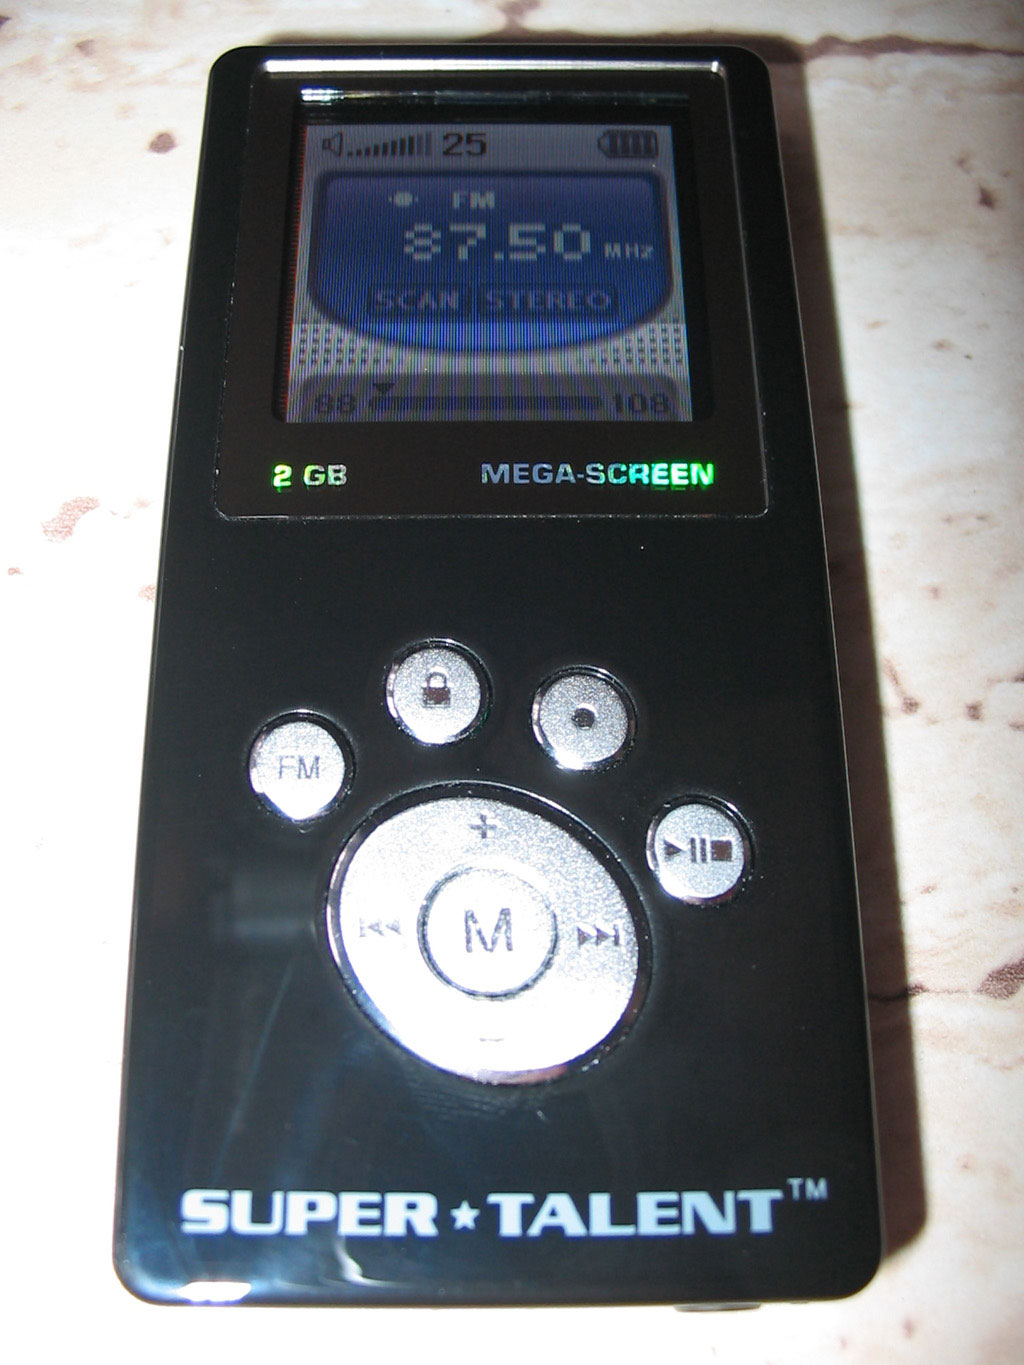 Everyday music listening and affect regulation: The role of MP3 players